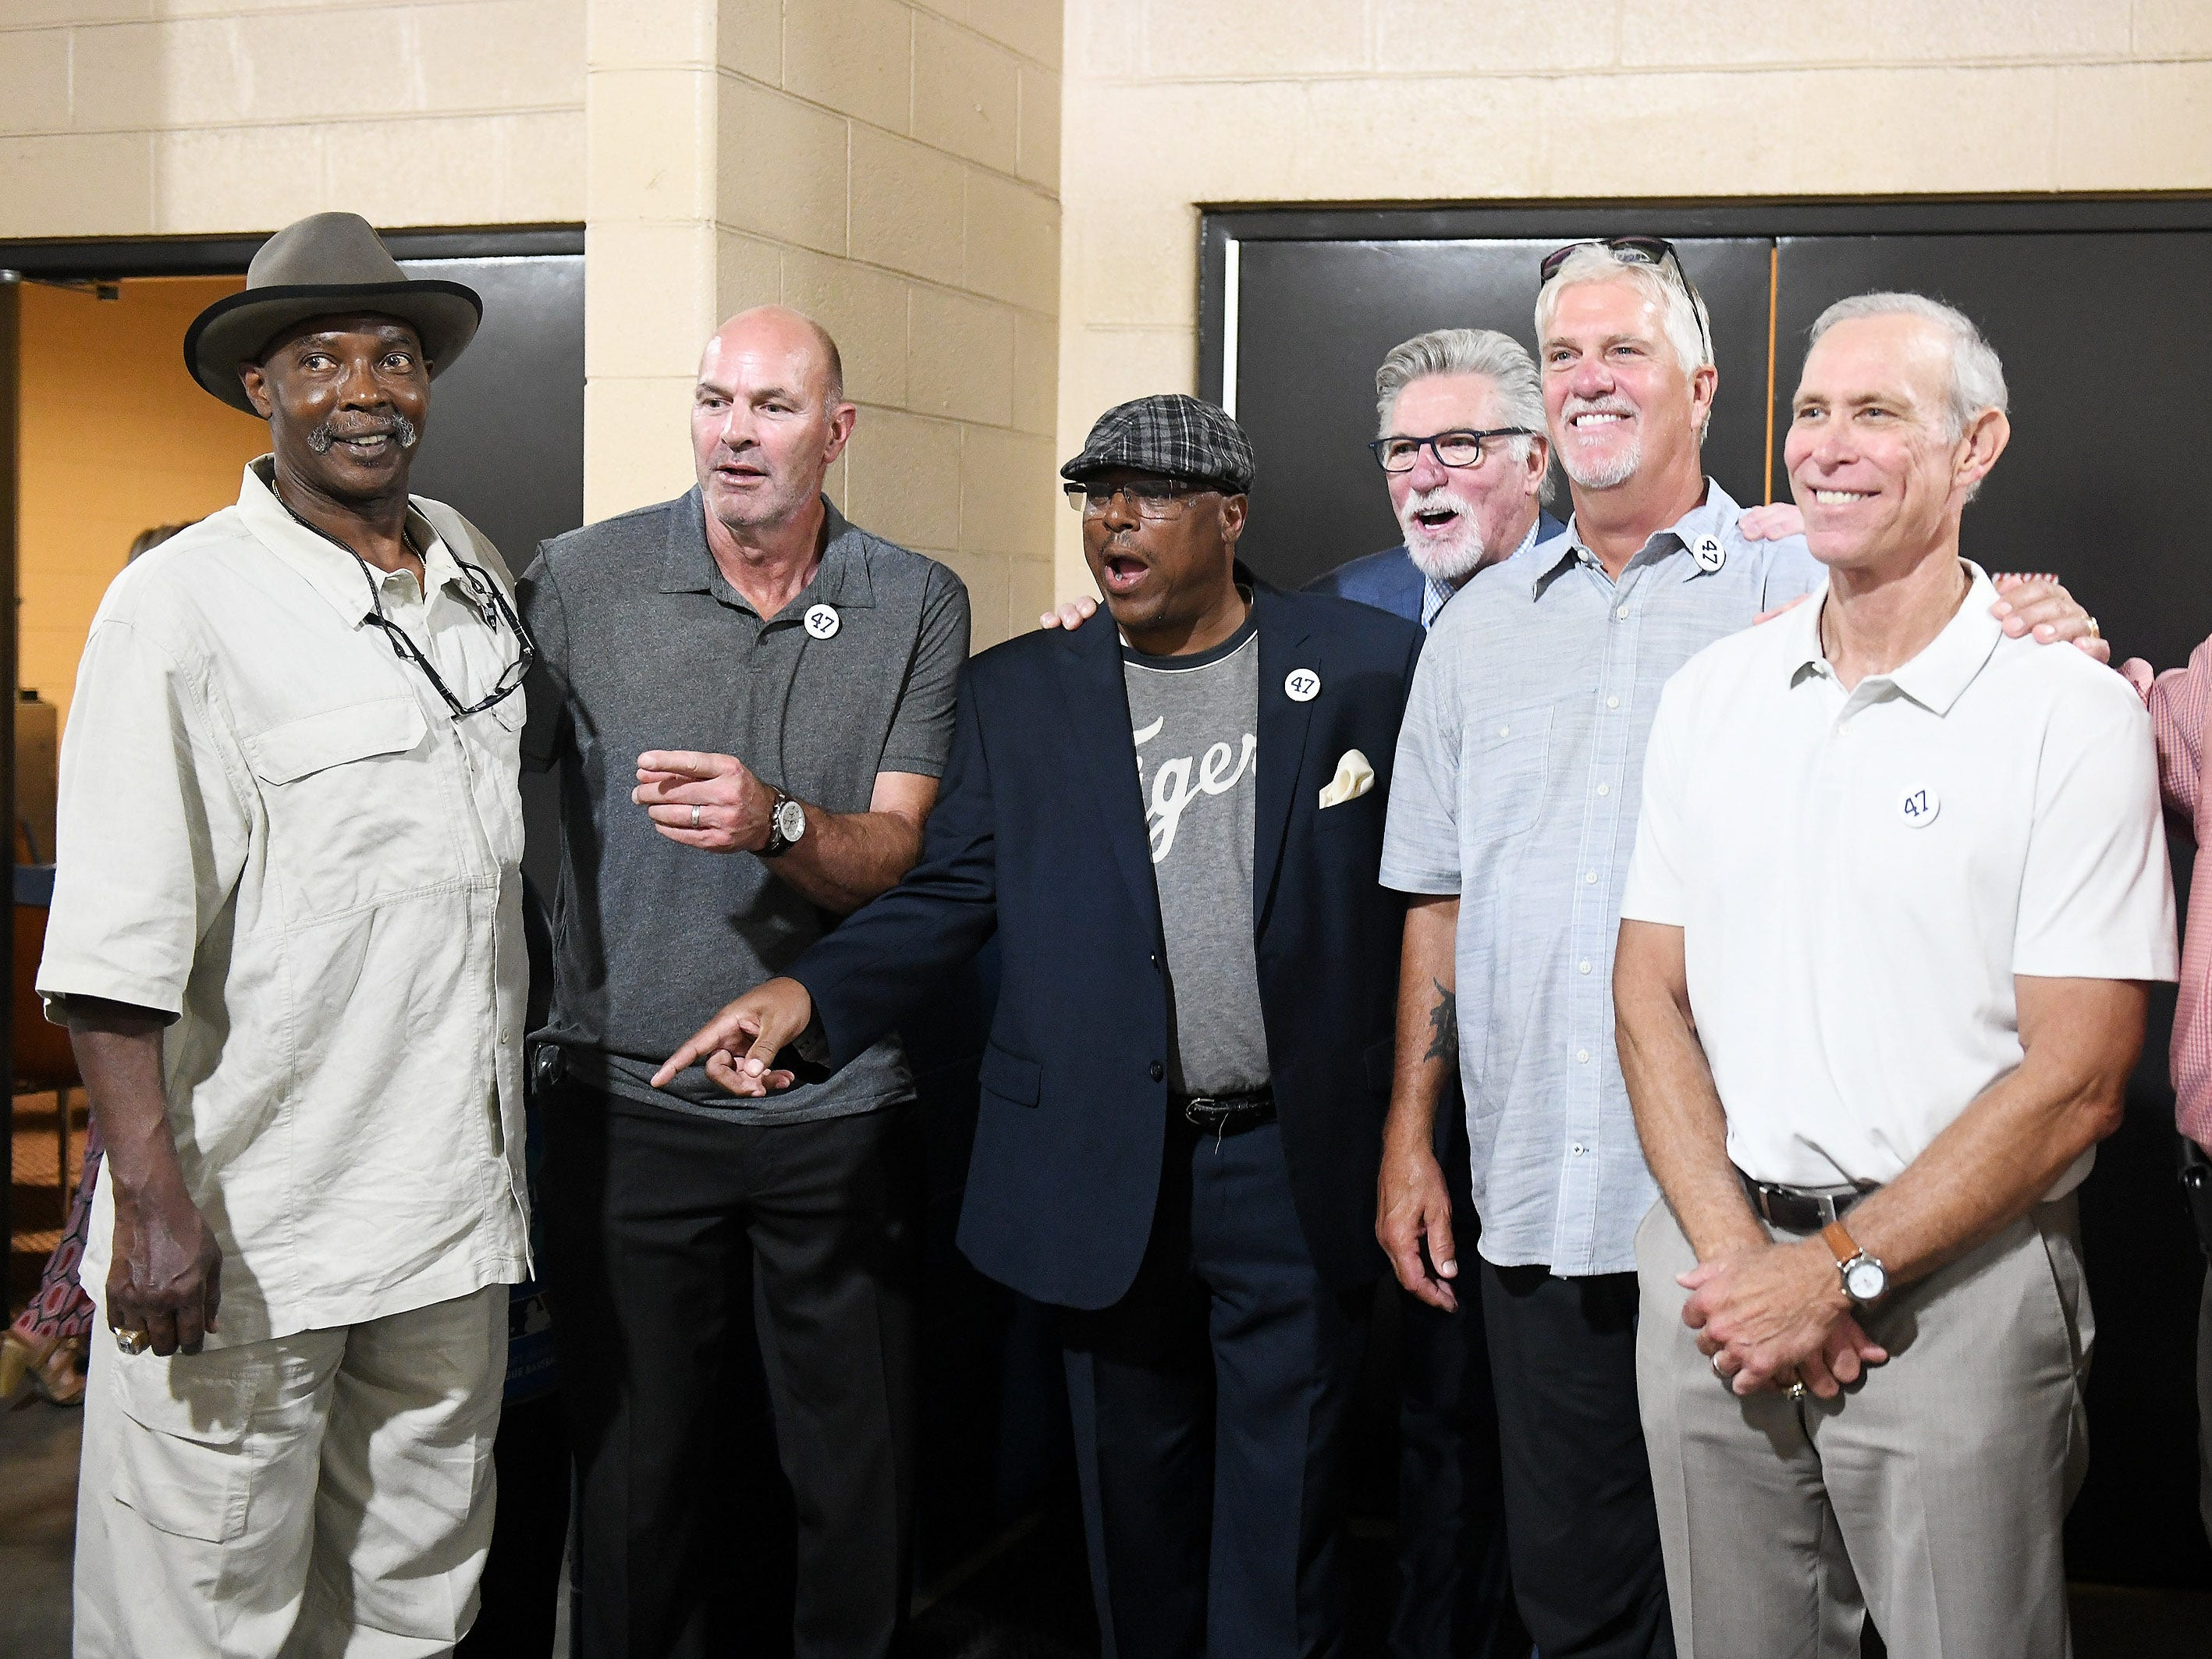 Members of the 1984 Tigers World Series Championship team react when they see former trainer Pio DiSalvo, not shown, while they gather before the special pregame ceremony to retire the #47 of former Tigers pitcher and Hall of Fame pitcher Jack Morris. From left, Larry Herndon, Kirk Gibson, Lou Whitaker, Jack Morris, Dave Rozema, Alan Trammell and Dan Petry.